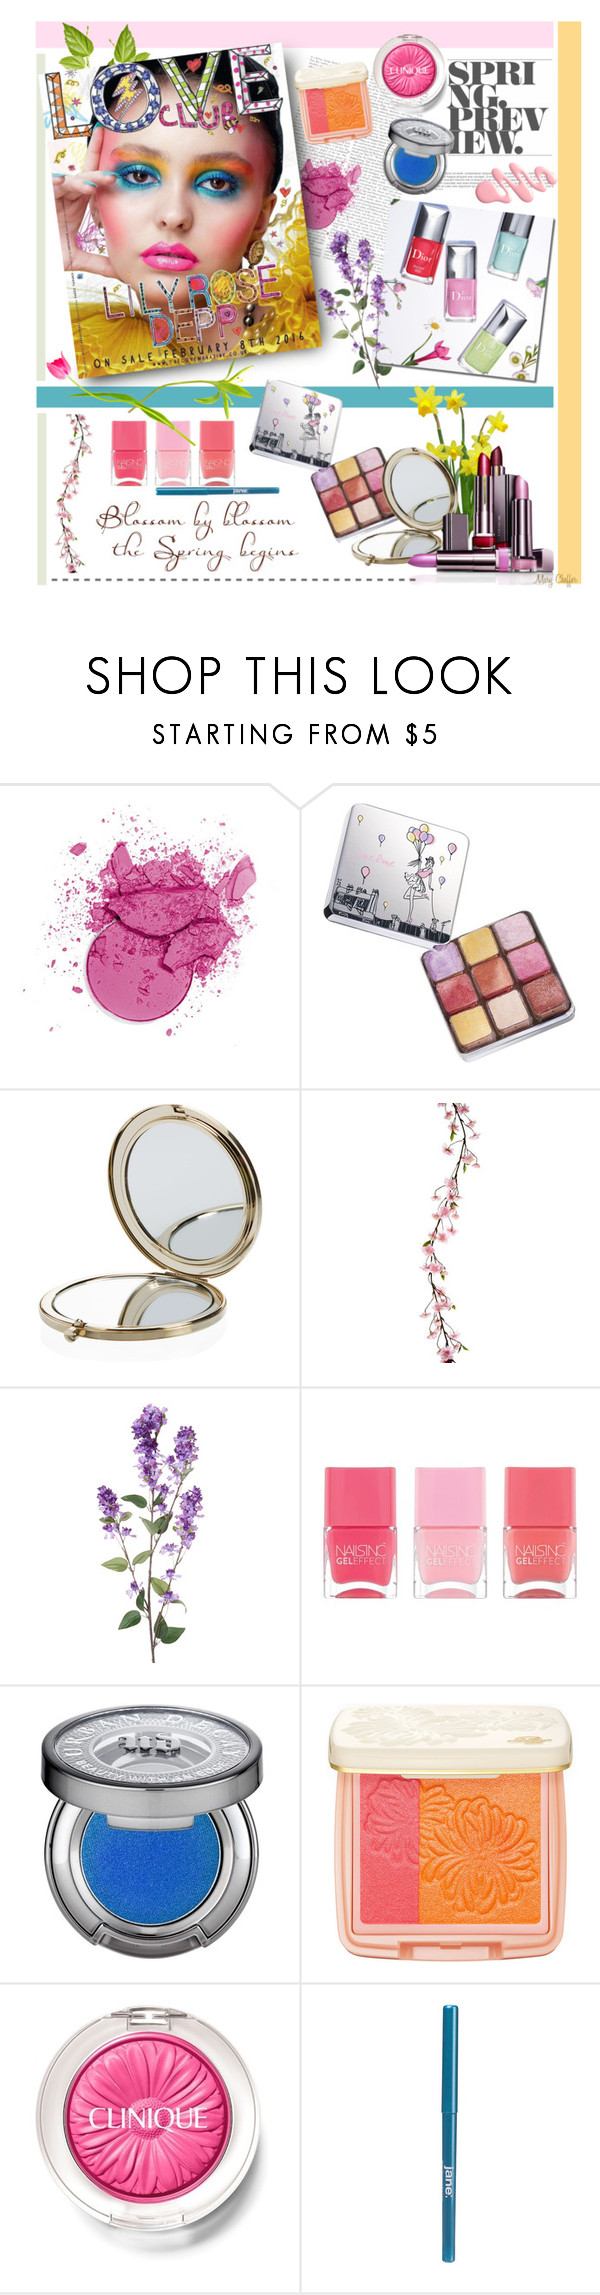 """Spring Preview: Lilly Rose Depp"" by mcheffer ❤ liked on Polyvore featuring beauty, Lancôme, Henri Bendel, Nails Inc., Urban Decay, Paul & Joe Beaute, Clinique, jane, Spring and Beauty"